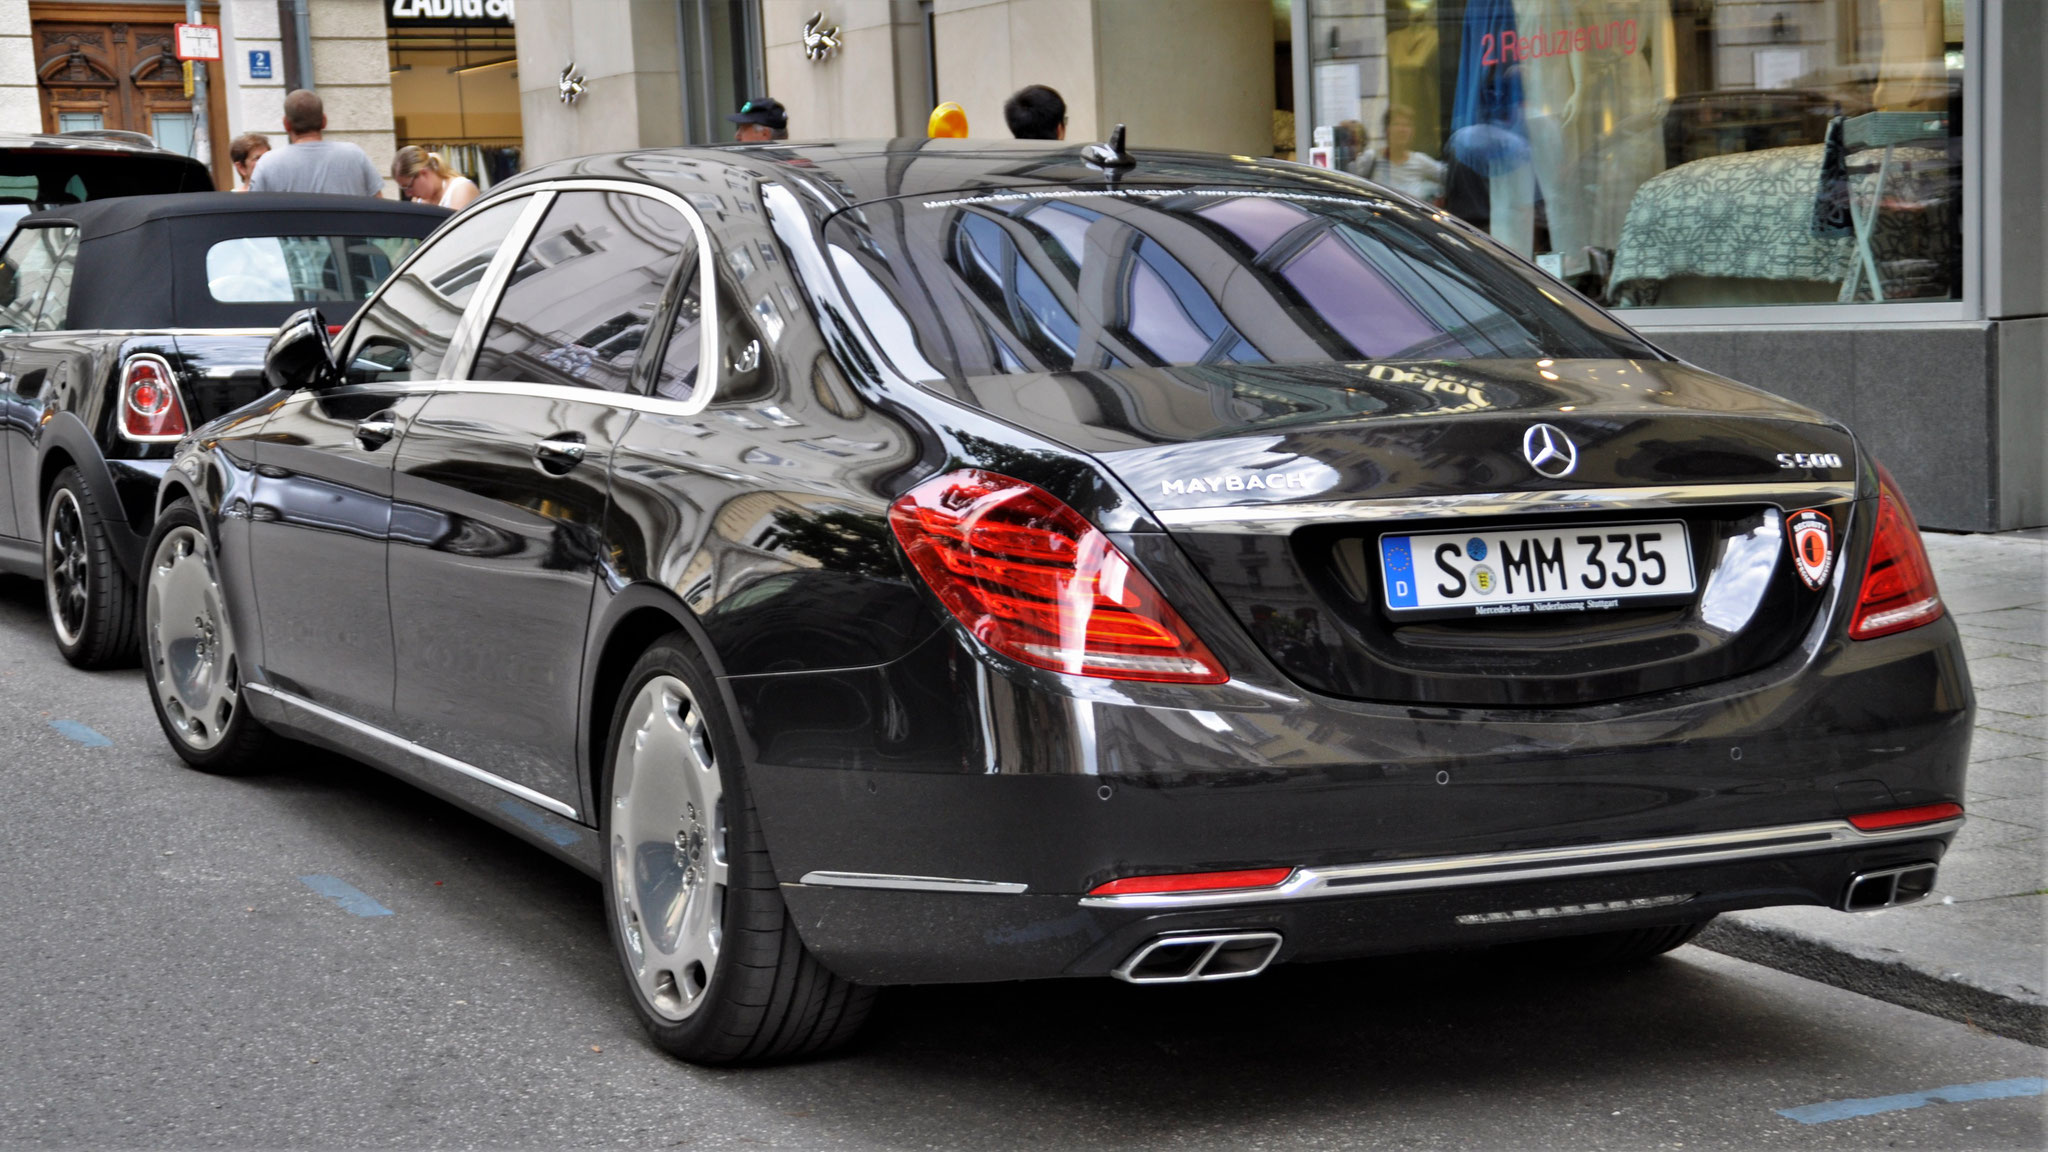 Mercedes Maybach S500 - S-MM-335